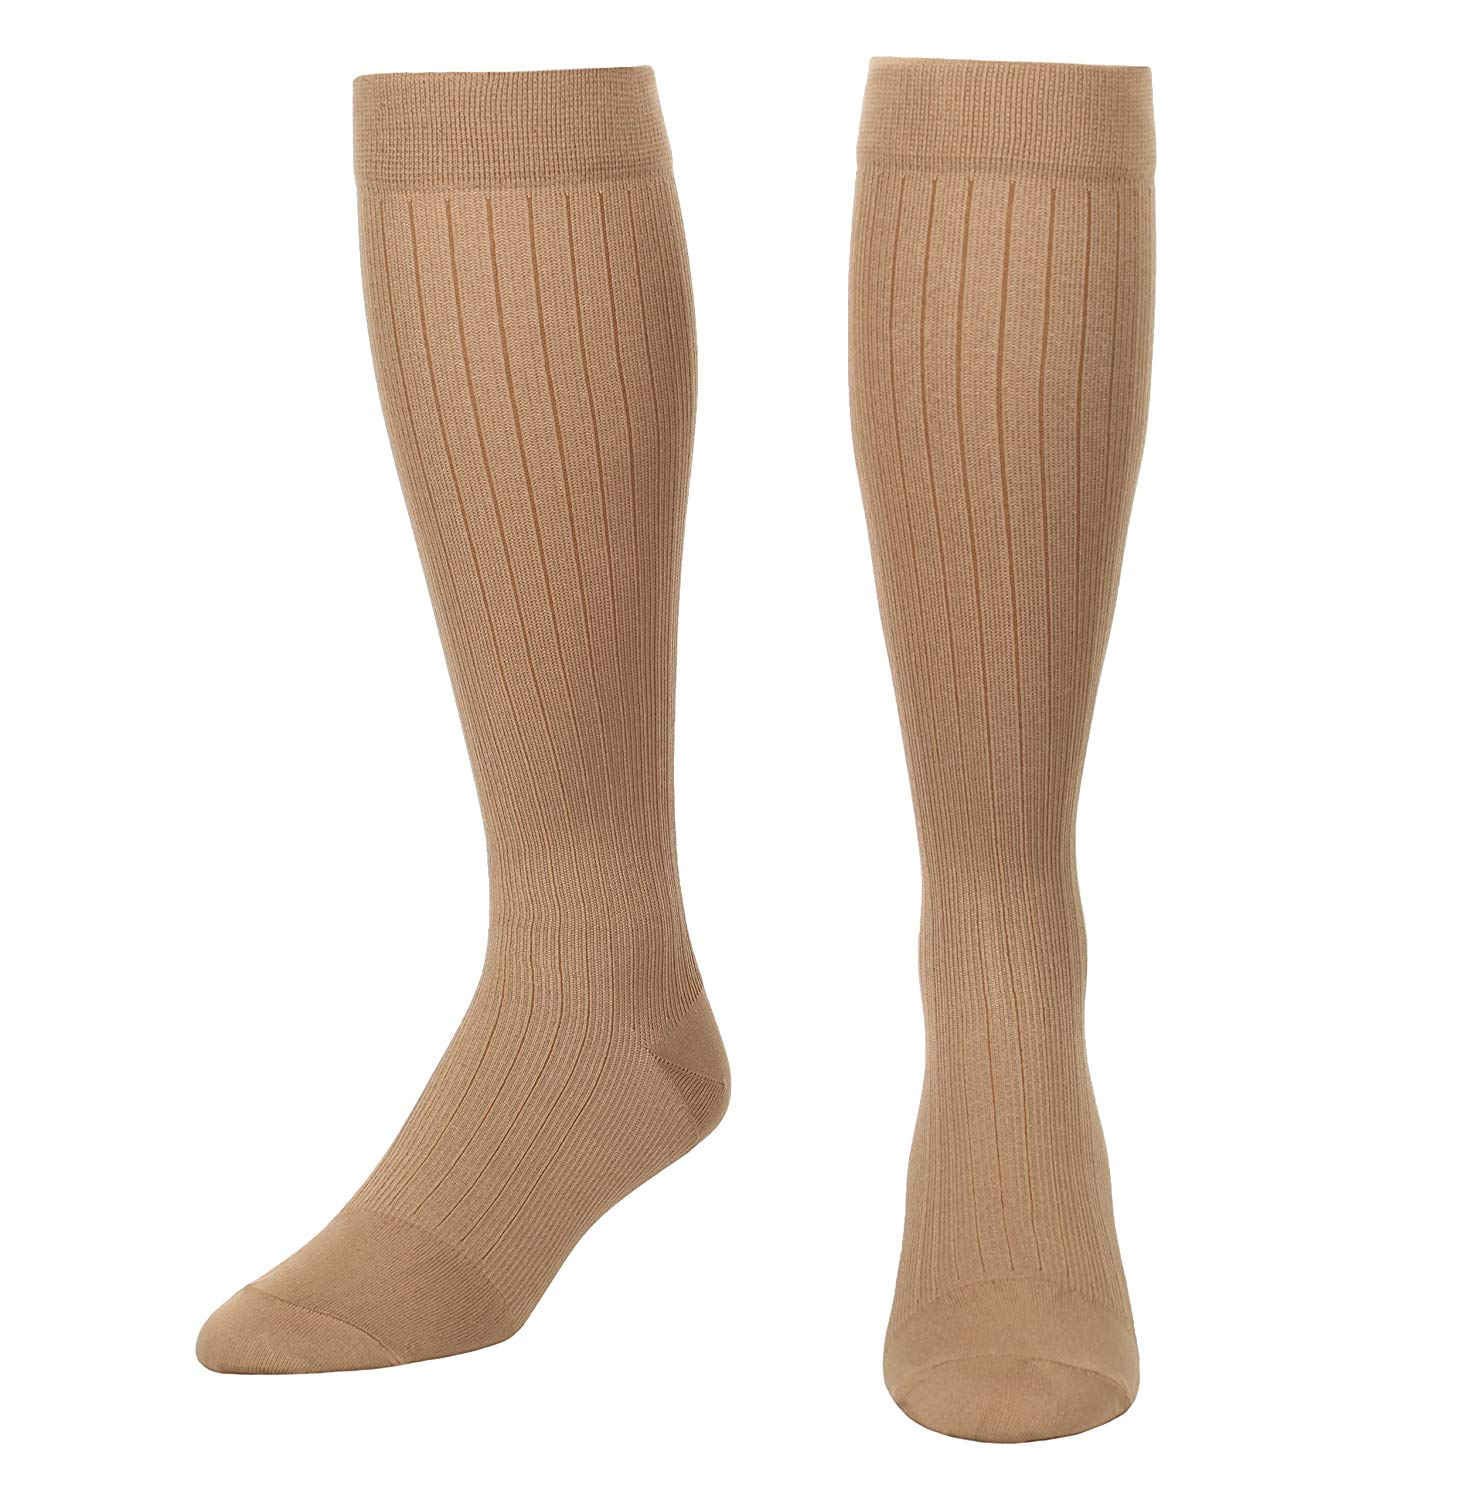 Microfiber and Cotton Compression Socks for men with - Dress Sock look and feel - Graduated Support Socks 15-20 mmHg - 1 Pair - Made In USA - Absolute Support - Sku: A1013 (Khaki, XL)